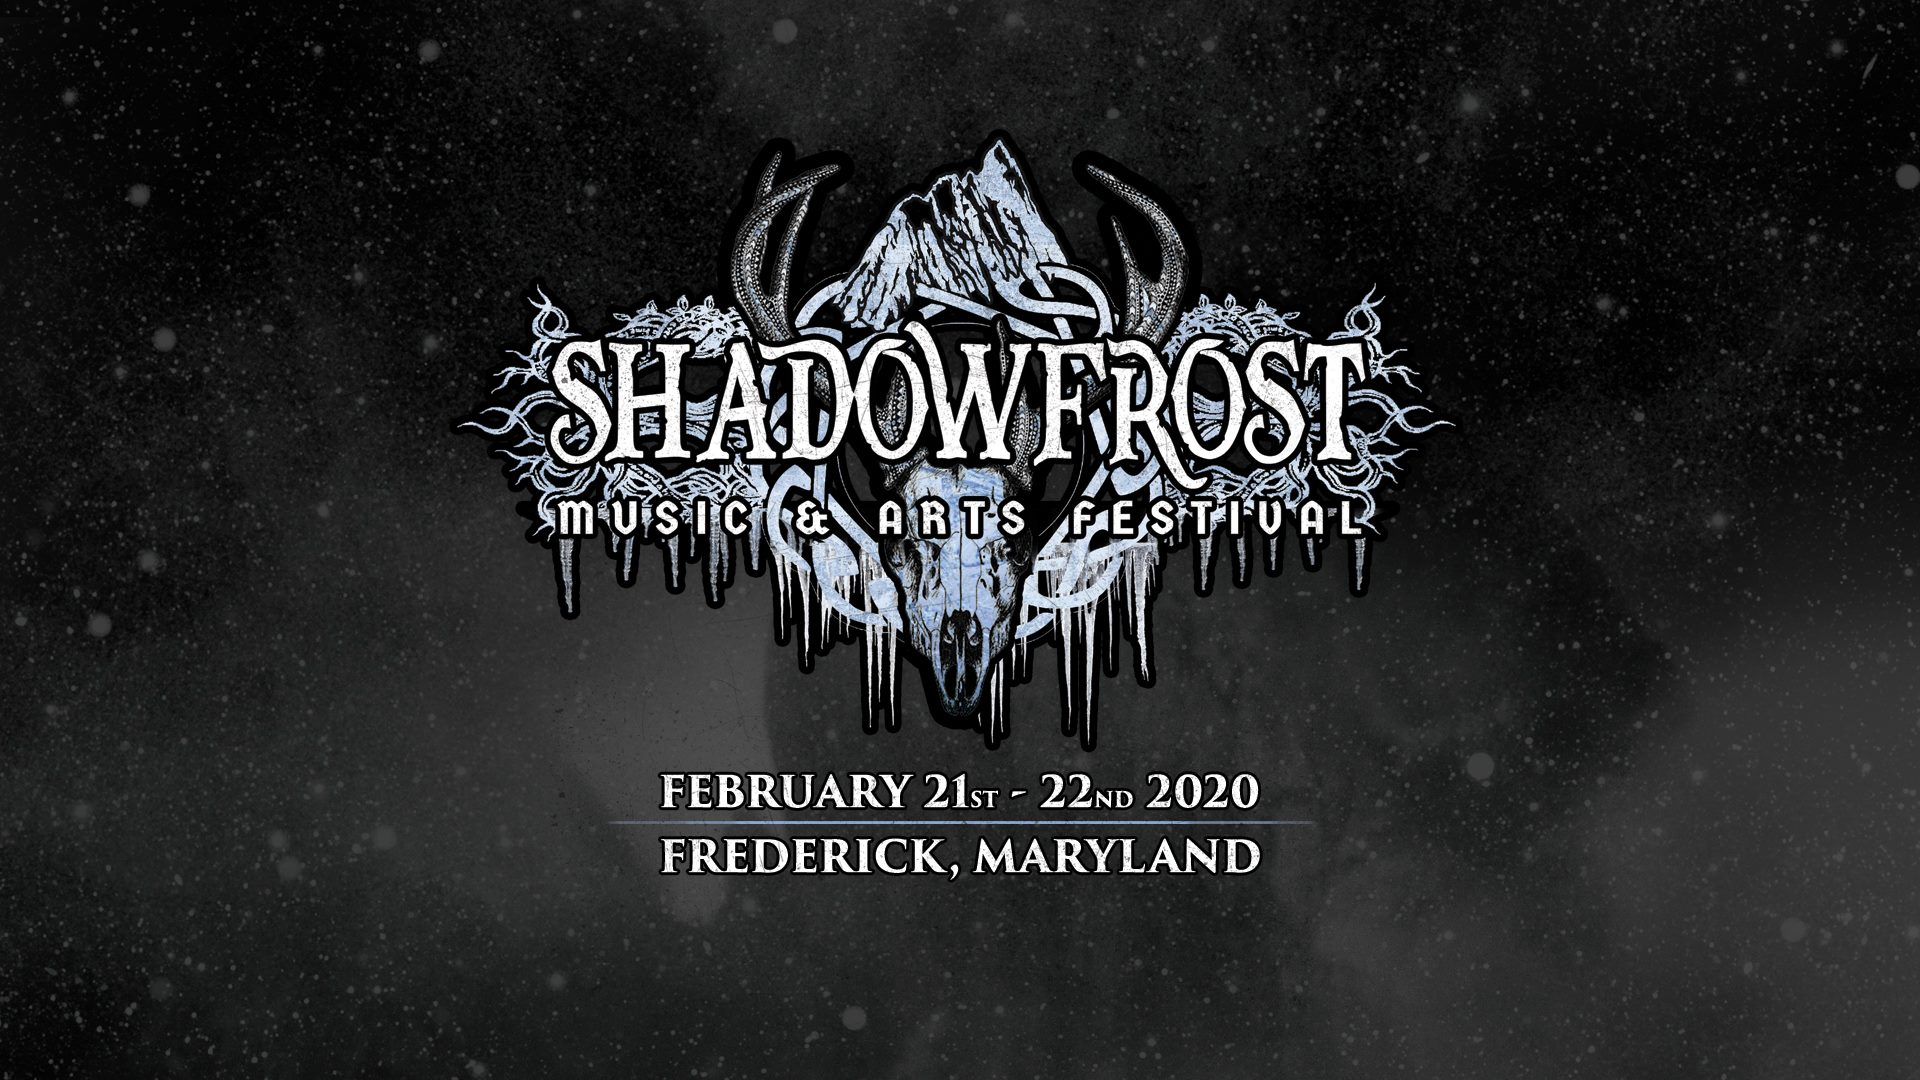 shadowfrost 2020 dates banner